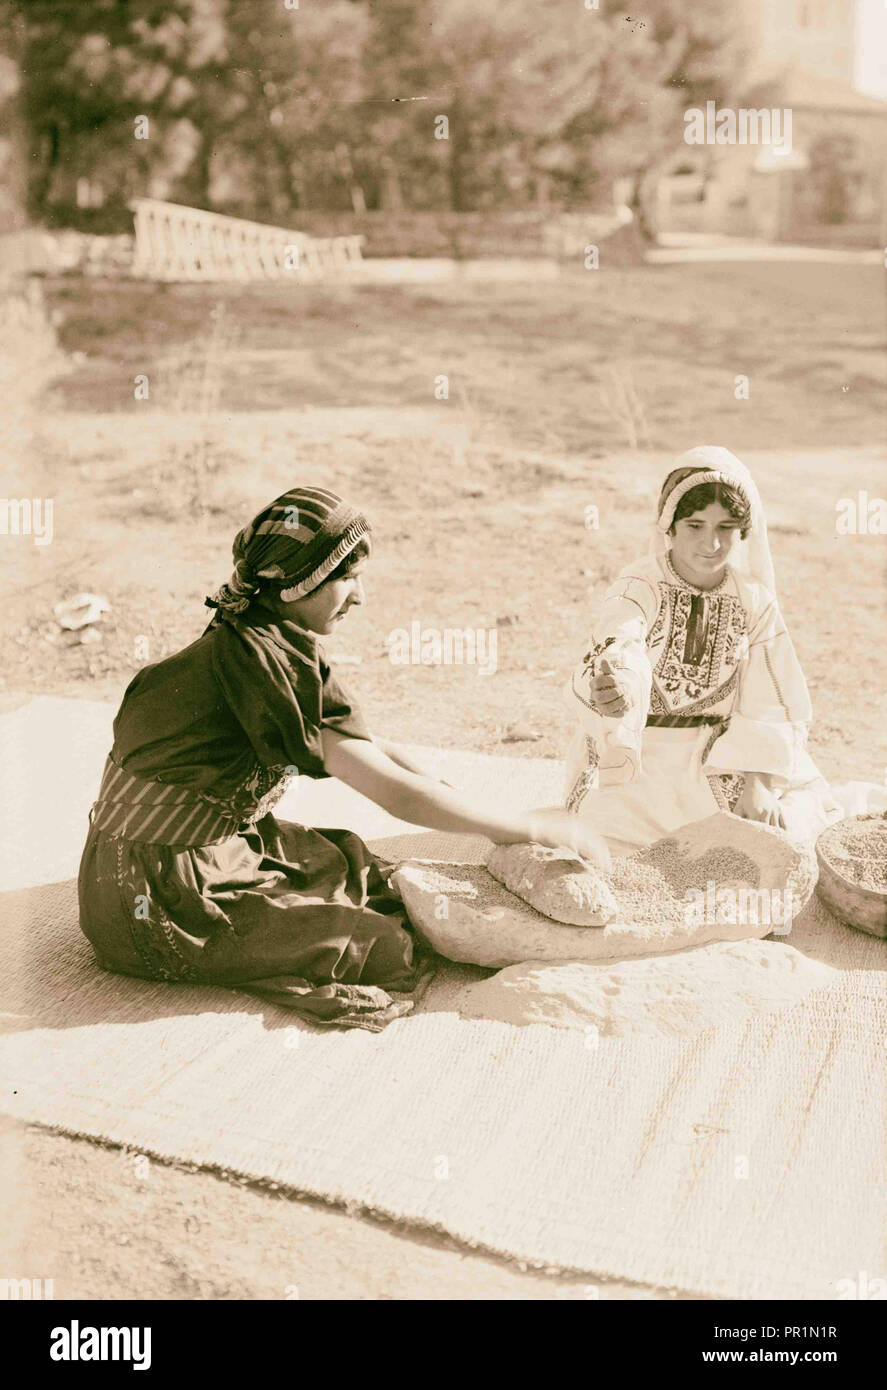 Arab women working primitive grain mill 1900, Middle East, Israel and/or Palestine - Stock Image